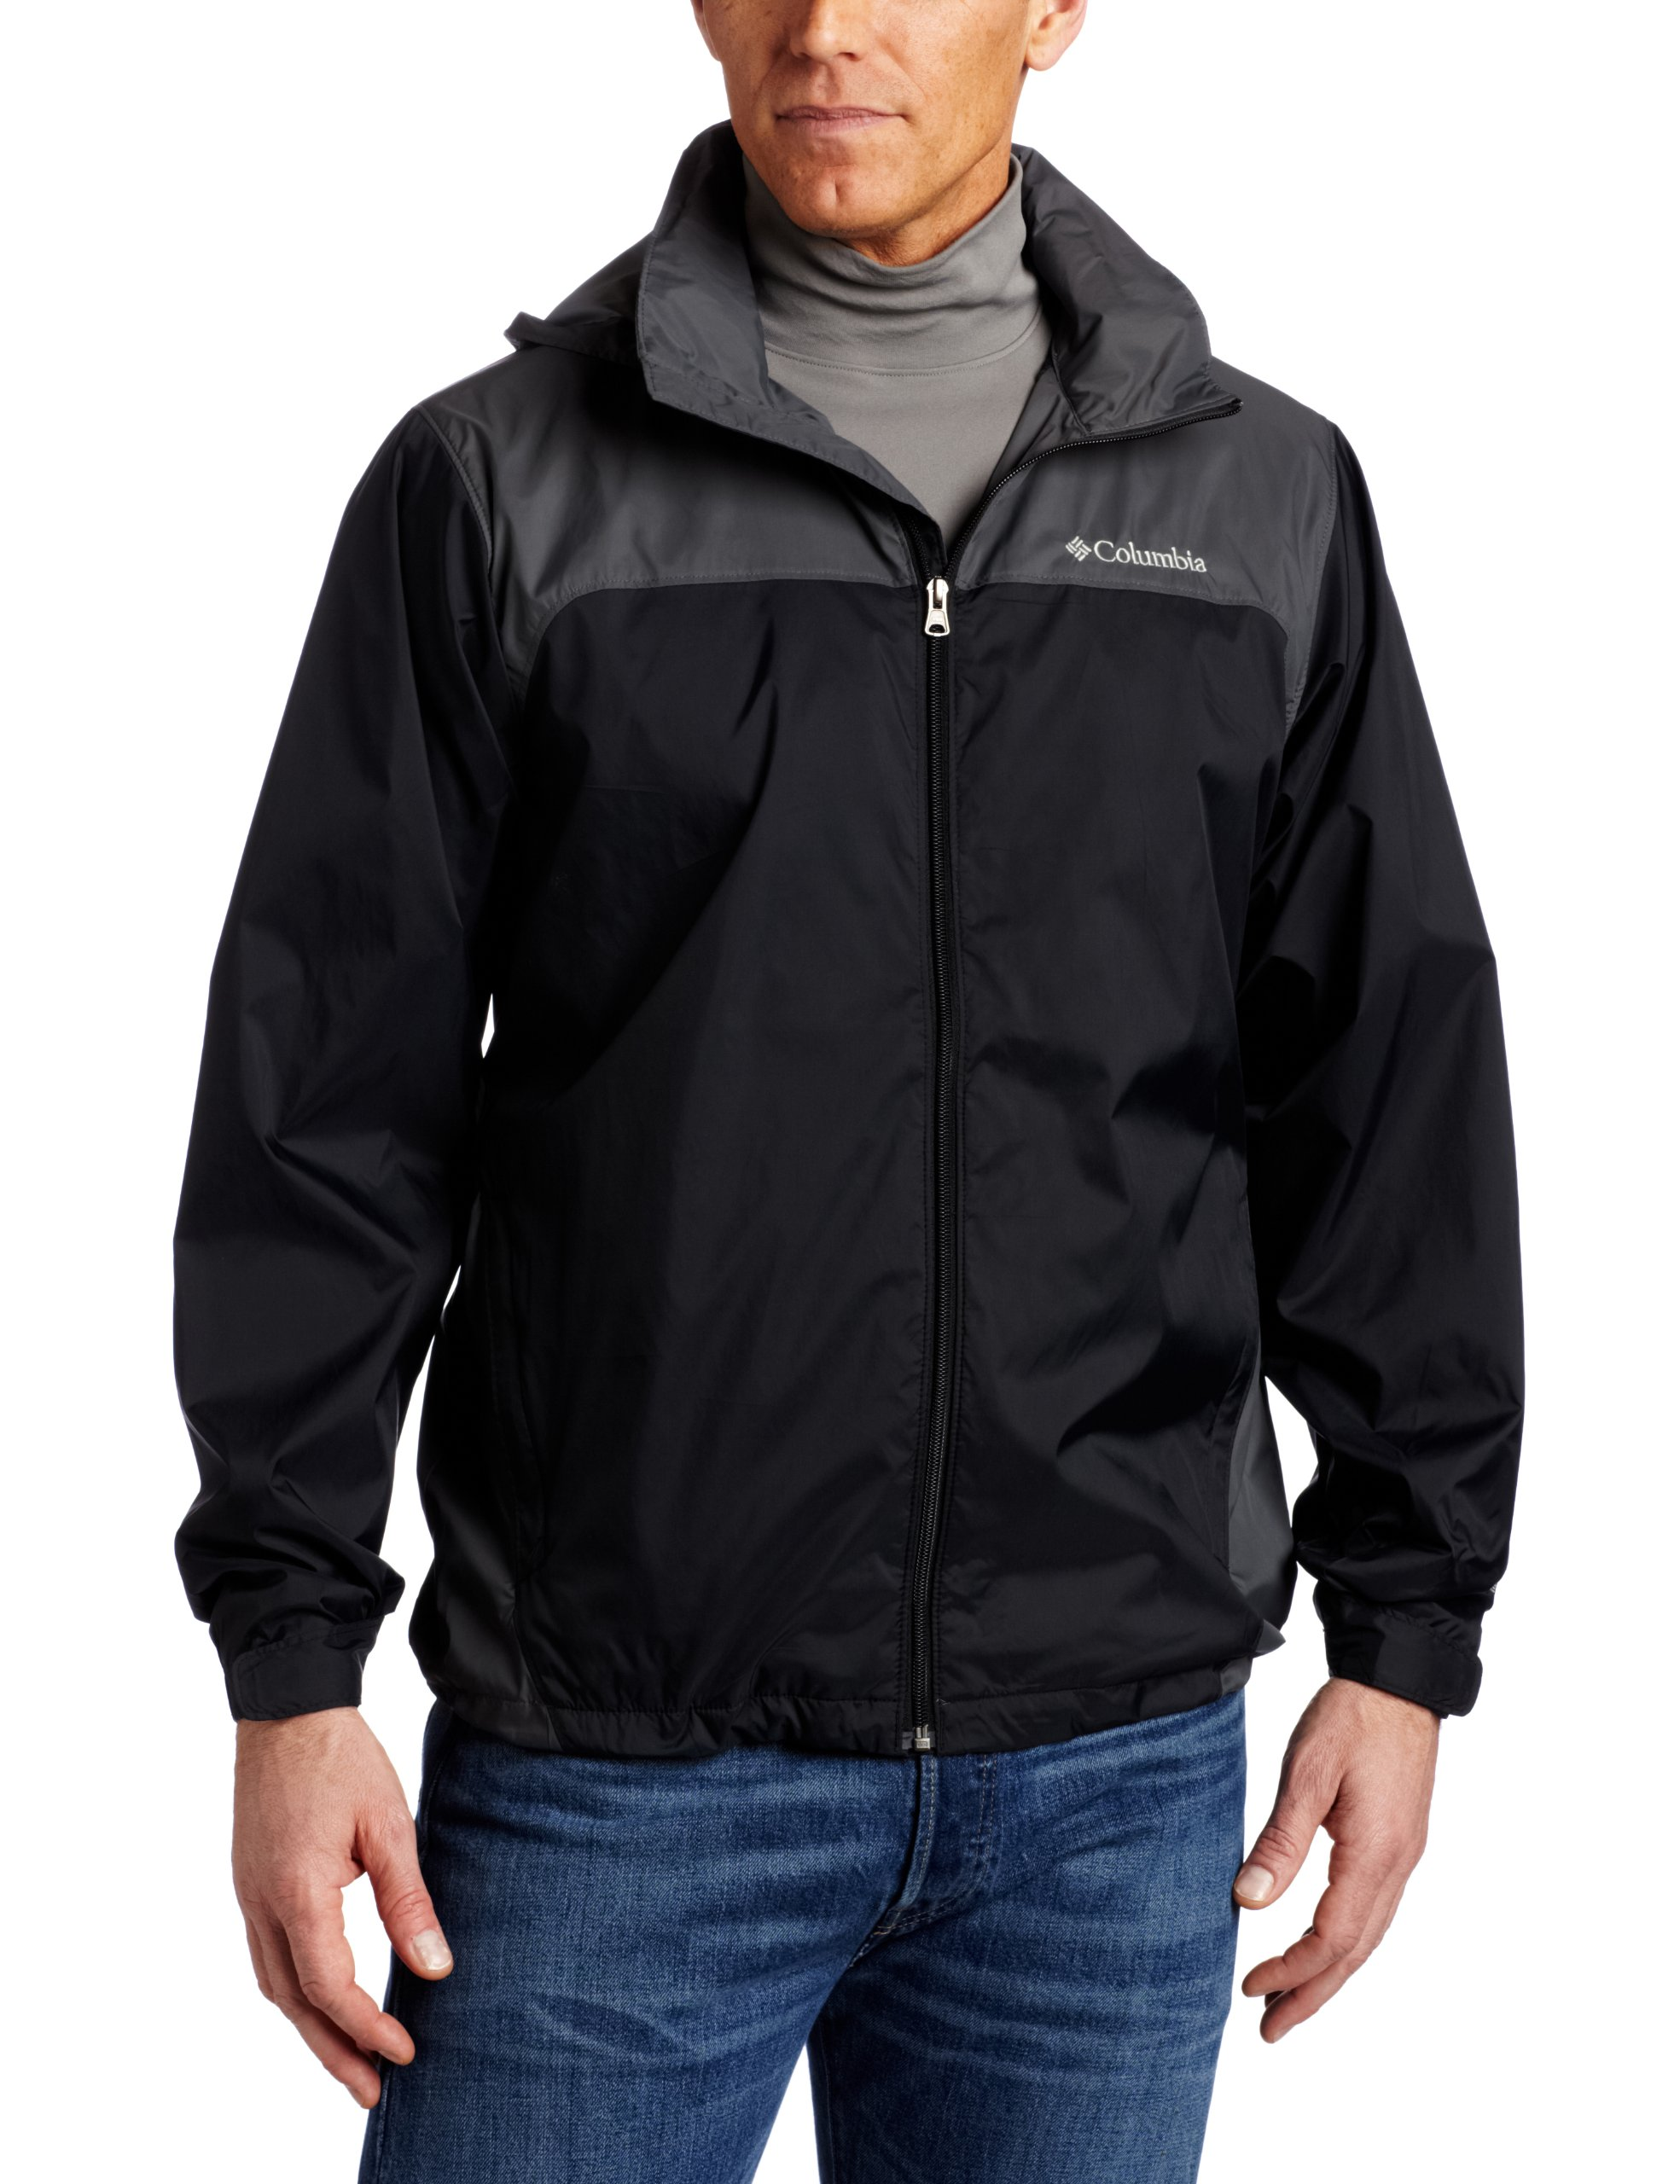 Columbia Men's Big & Tall Glennaker Lake Packable Rain Jacket,Black/Grill,4X